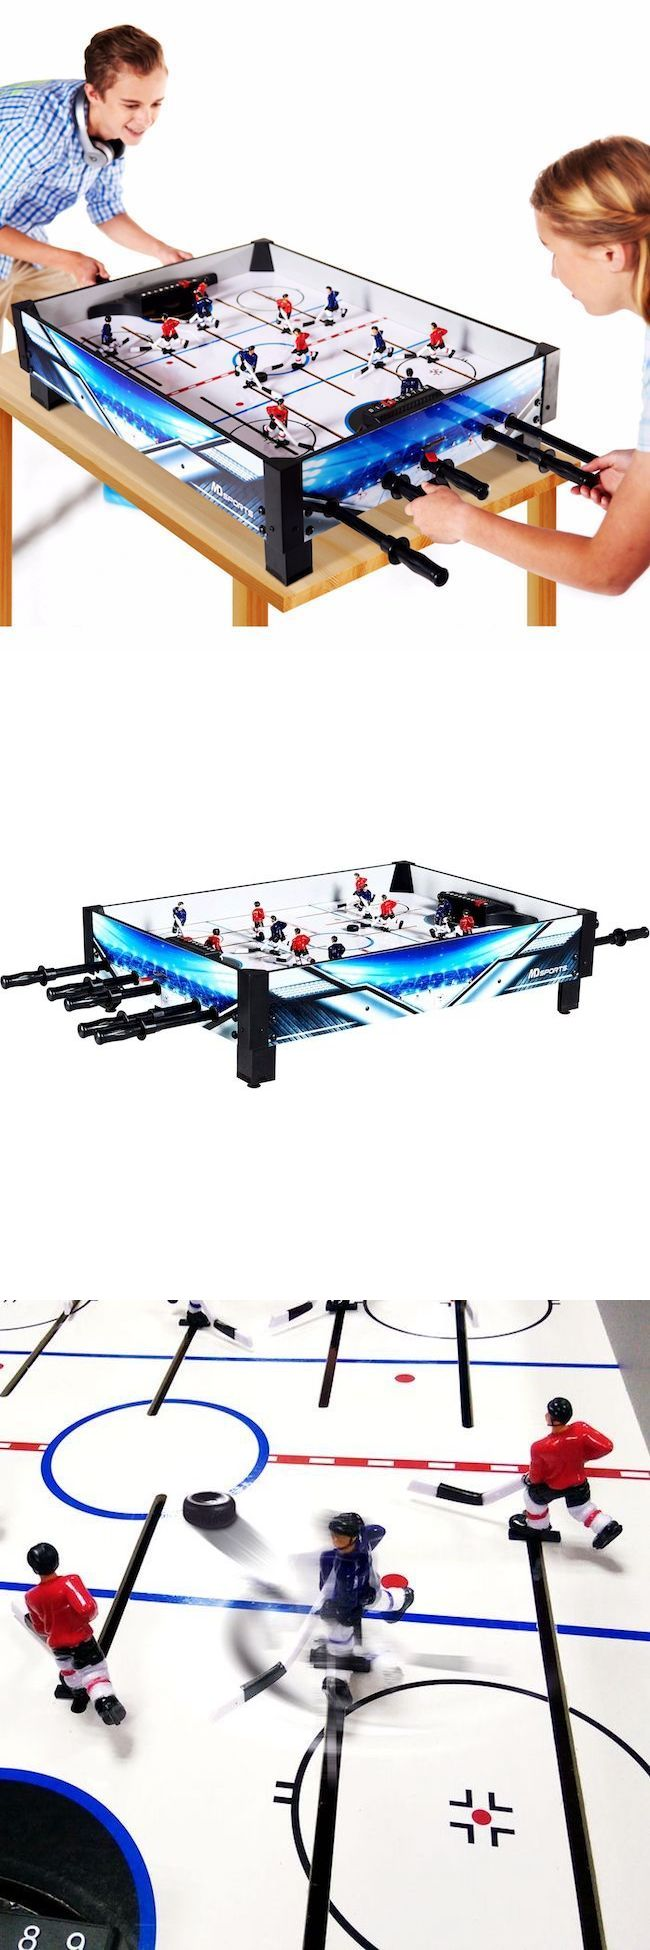 Air Hockey 36275: Hockey Table Set Ice Games Nhl Board Sports Kids Family Night Sports Indoor Gift -> BUY IT NOW ONLY: $73.86 on eBay!